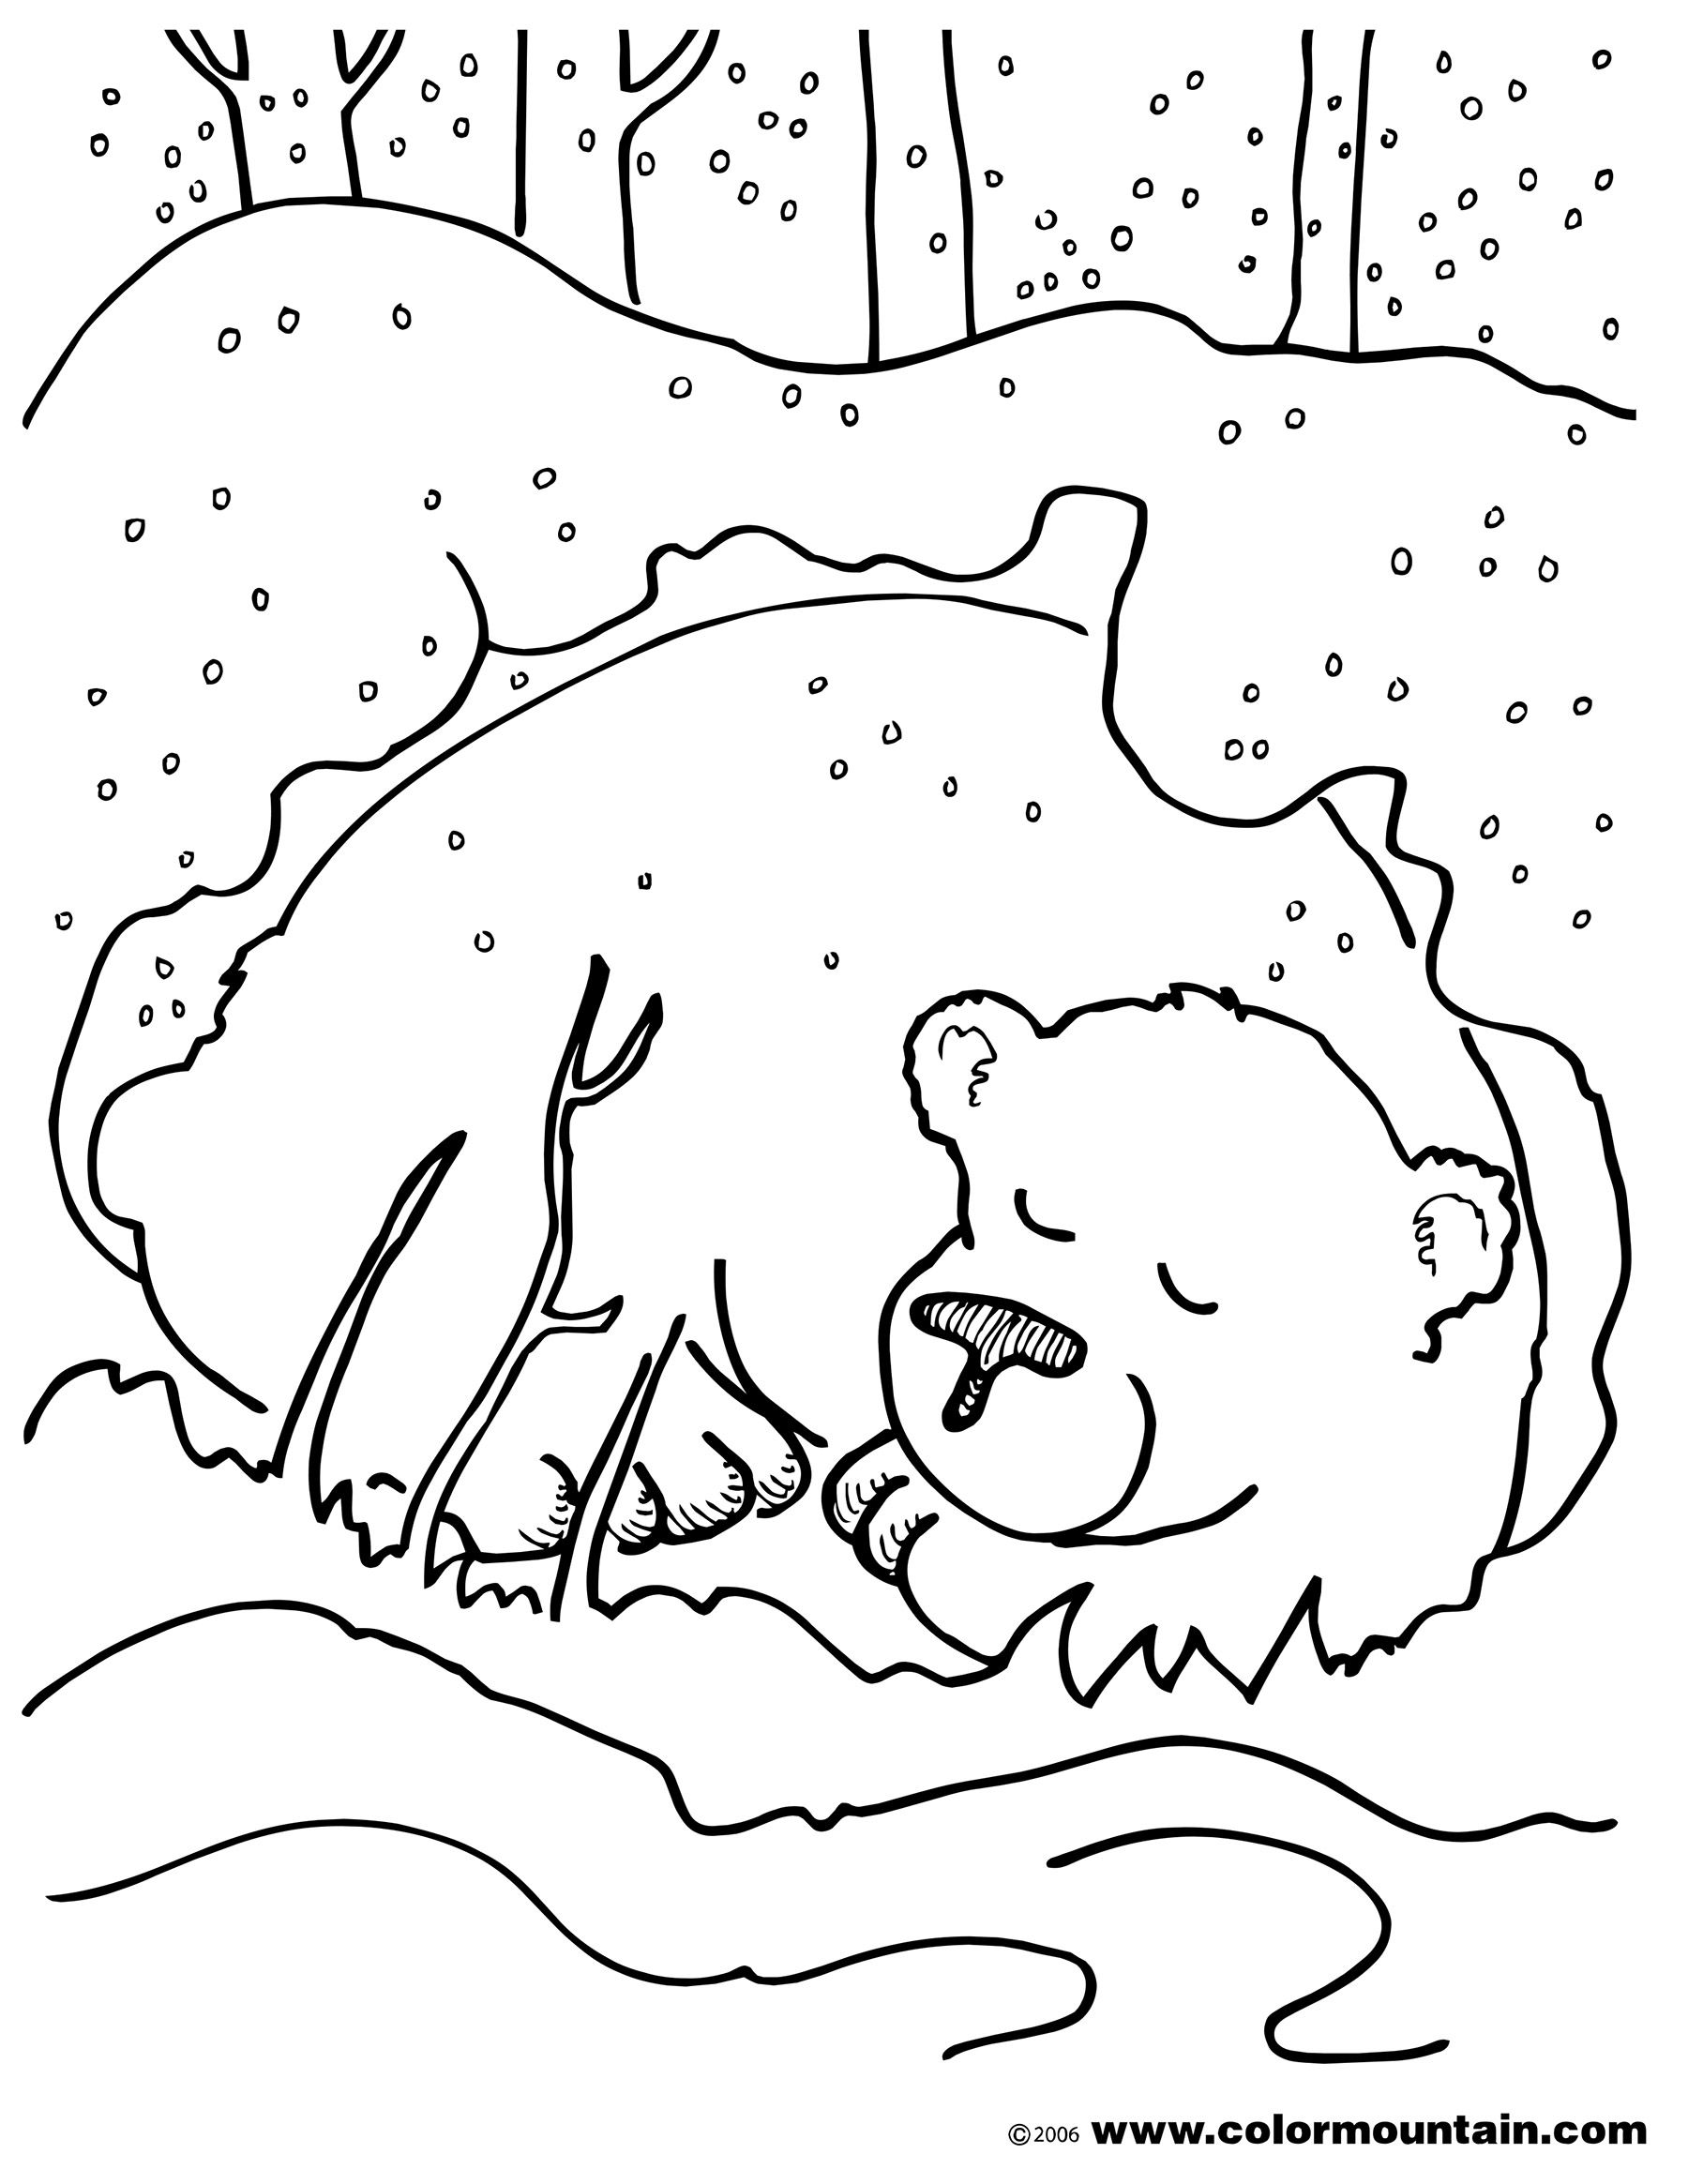 winter animal coloring pages winter animal coloring pages best of squirrel and rabbit animal winter pages coloring